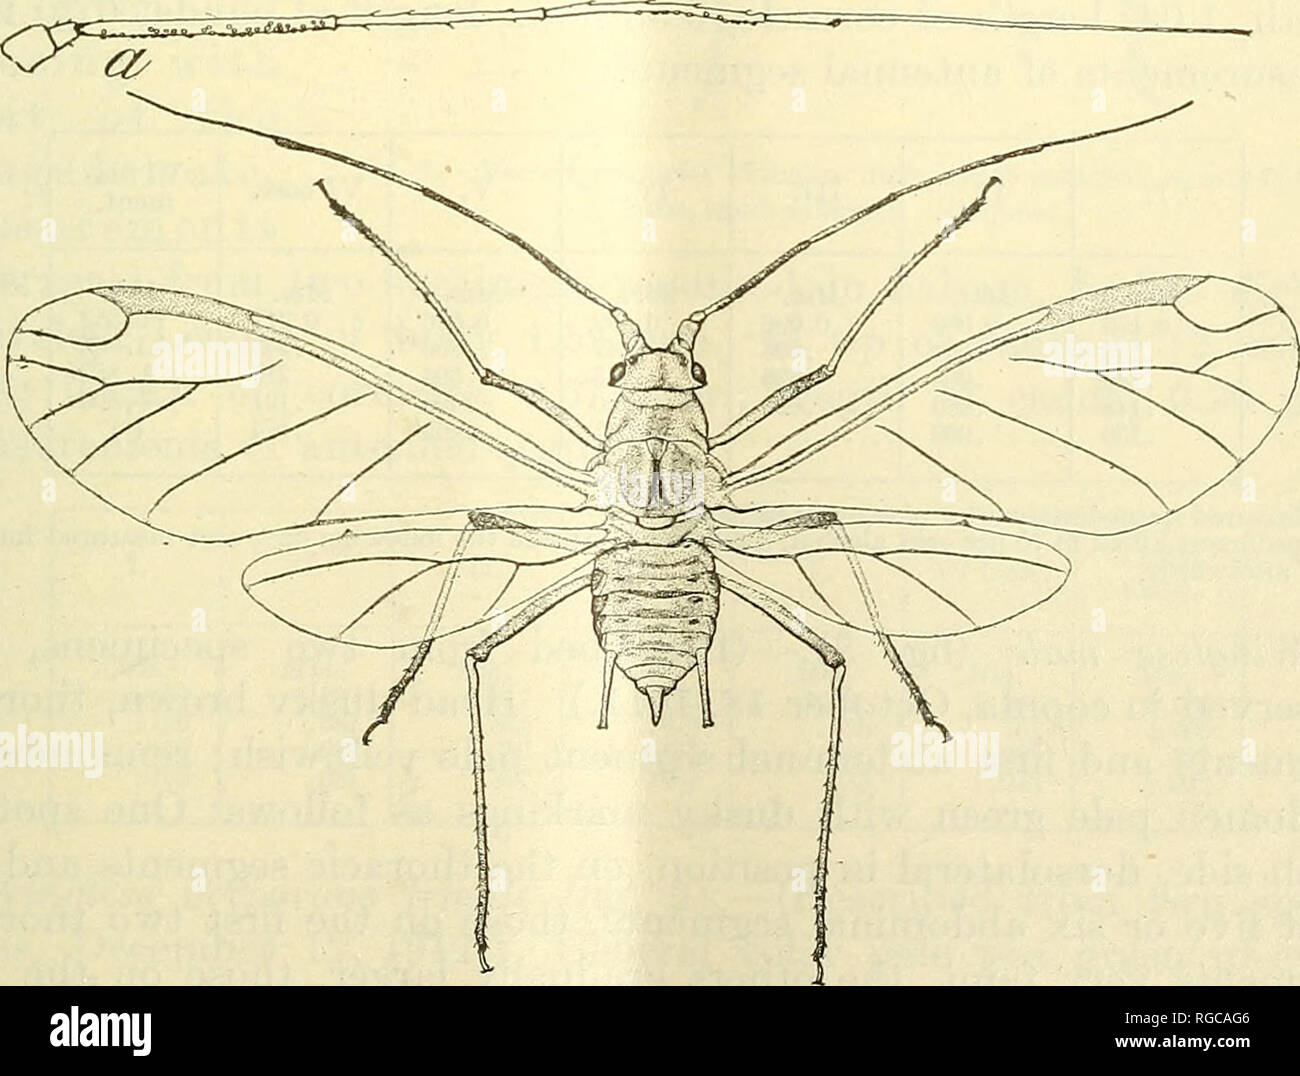 . Bulletin of the U.S. Department of Agriculture. Agriculture; Agriculture. THE PEA APHIS WITH RELATION TO FORAGE CROPS. 19 Measurements (average) from three specimens, immediately after placing in balsam and before shrinkage occurs: Length of body, 2.79 mm., to tip of cauda, 3.18., width, 1.11; length of wings, 3.51 mm., width, 1.16; length of cornicles, 0.84 mm.; length of cauda, 0.46 mm.; length of hind tibia, 2.32 mm. Measurements of antennal segments: I. II. III. IV. V. VI, base. VI, fila- ment. Mm. 0.156 .156 Mm. 0.069 .078 Mm. 0.826 .817 ' 1.006 Mm. 0.721 .730 .716 .677 .658 .658 Mm. 0. Stock Photo